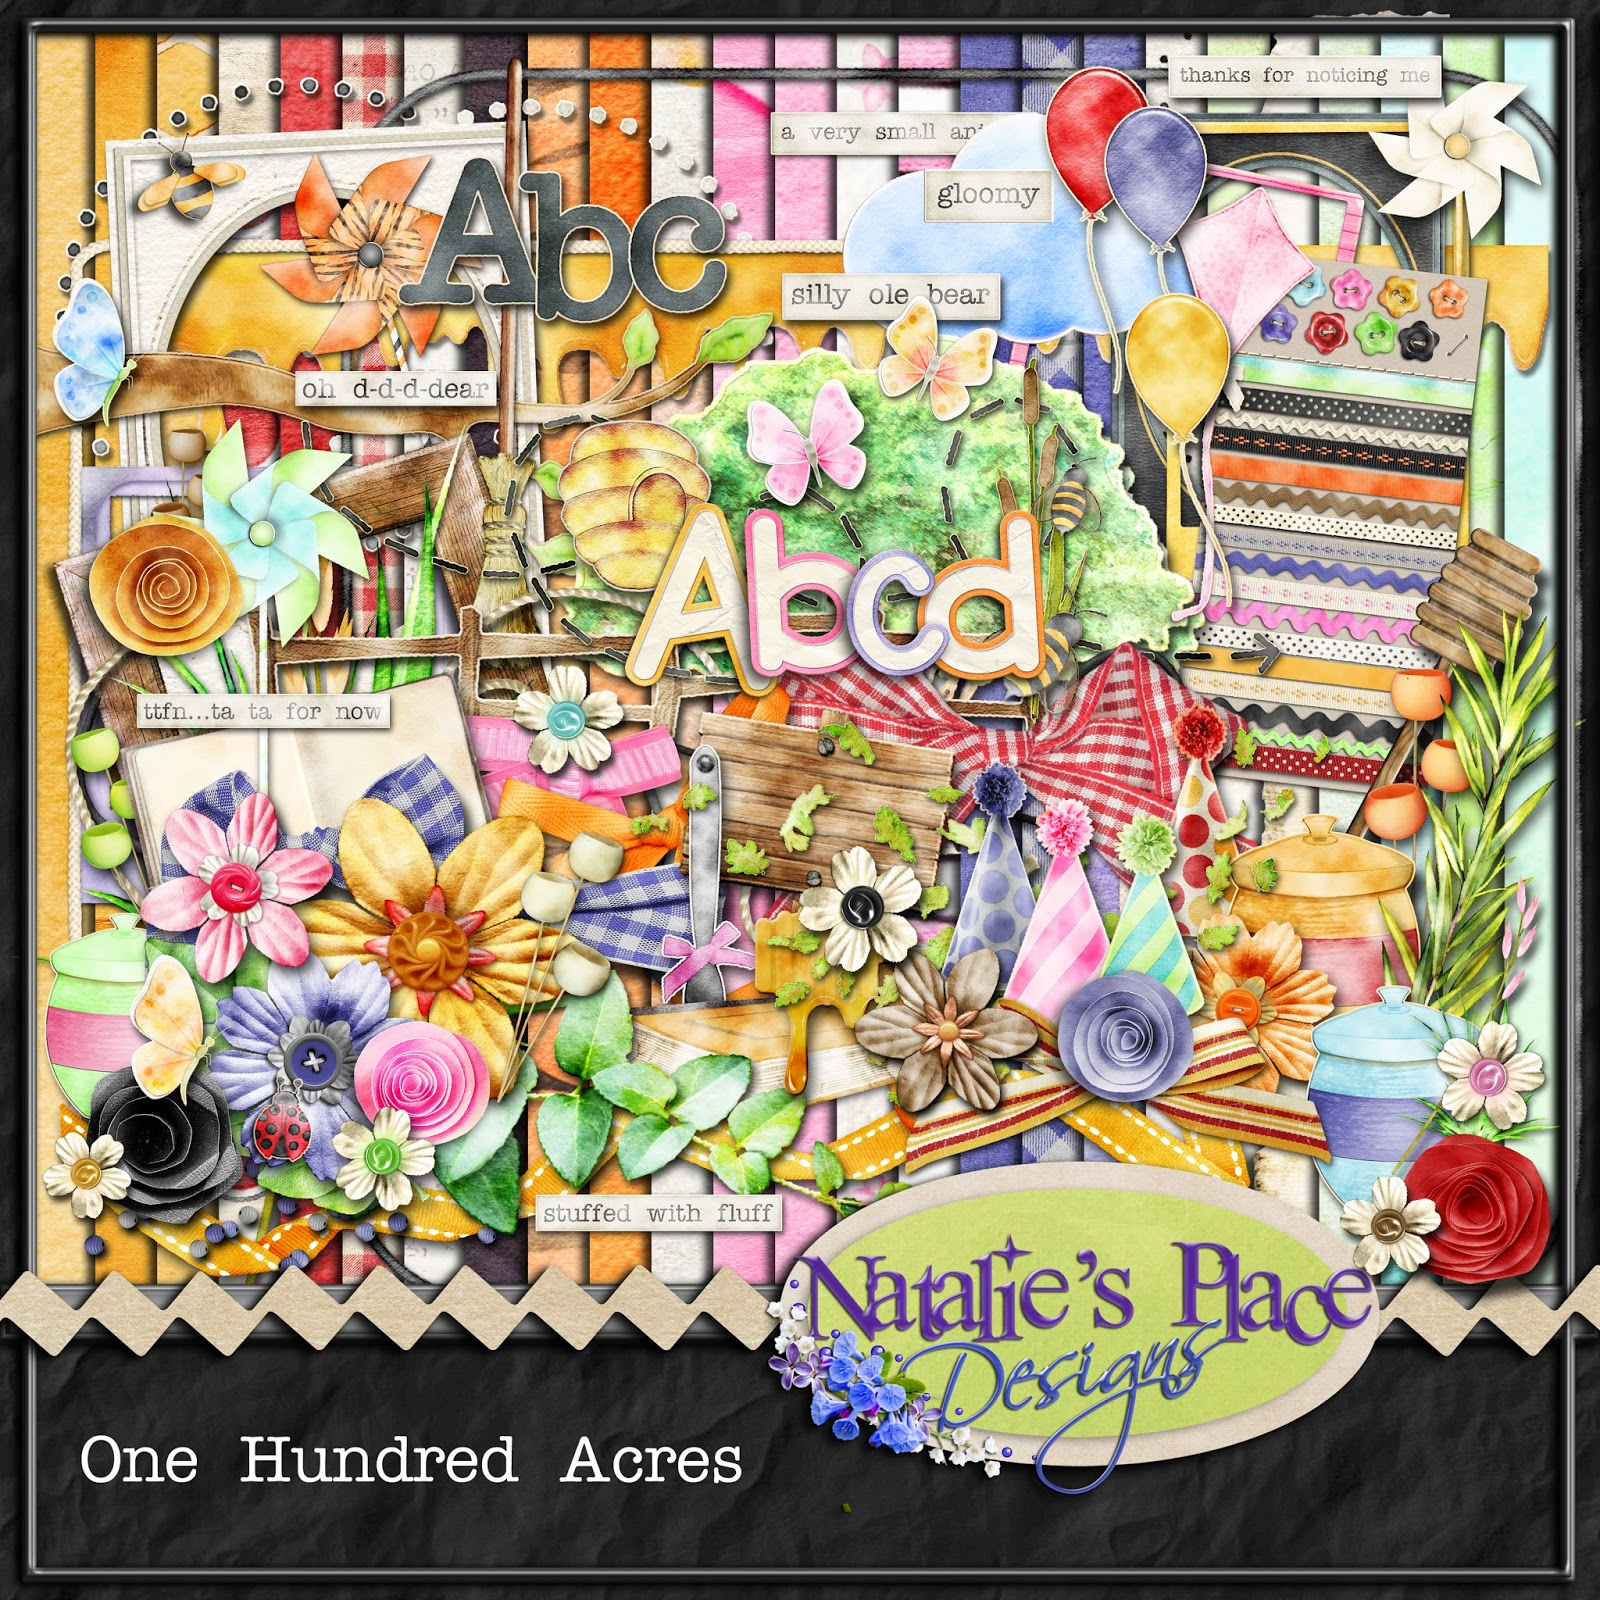 http://natalieslittlecorneroftheworld.blogspot.com/2014/10/deep-in-hundred-acre-wood.html